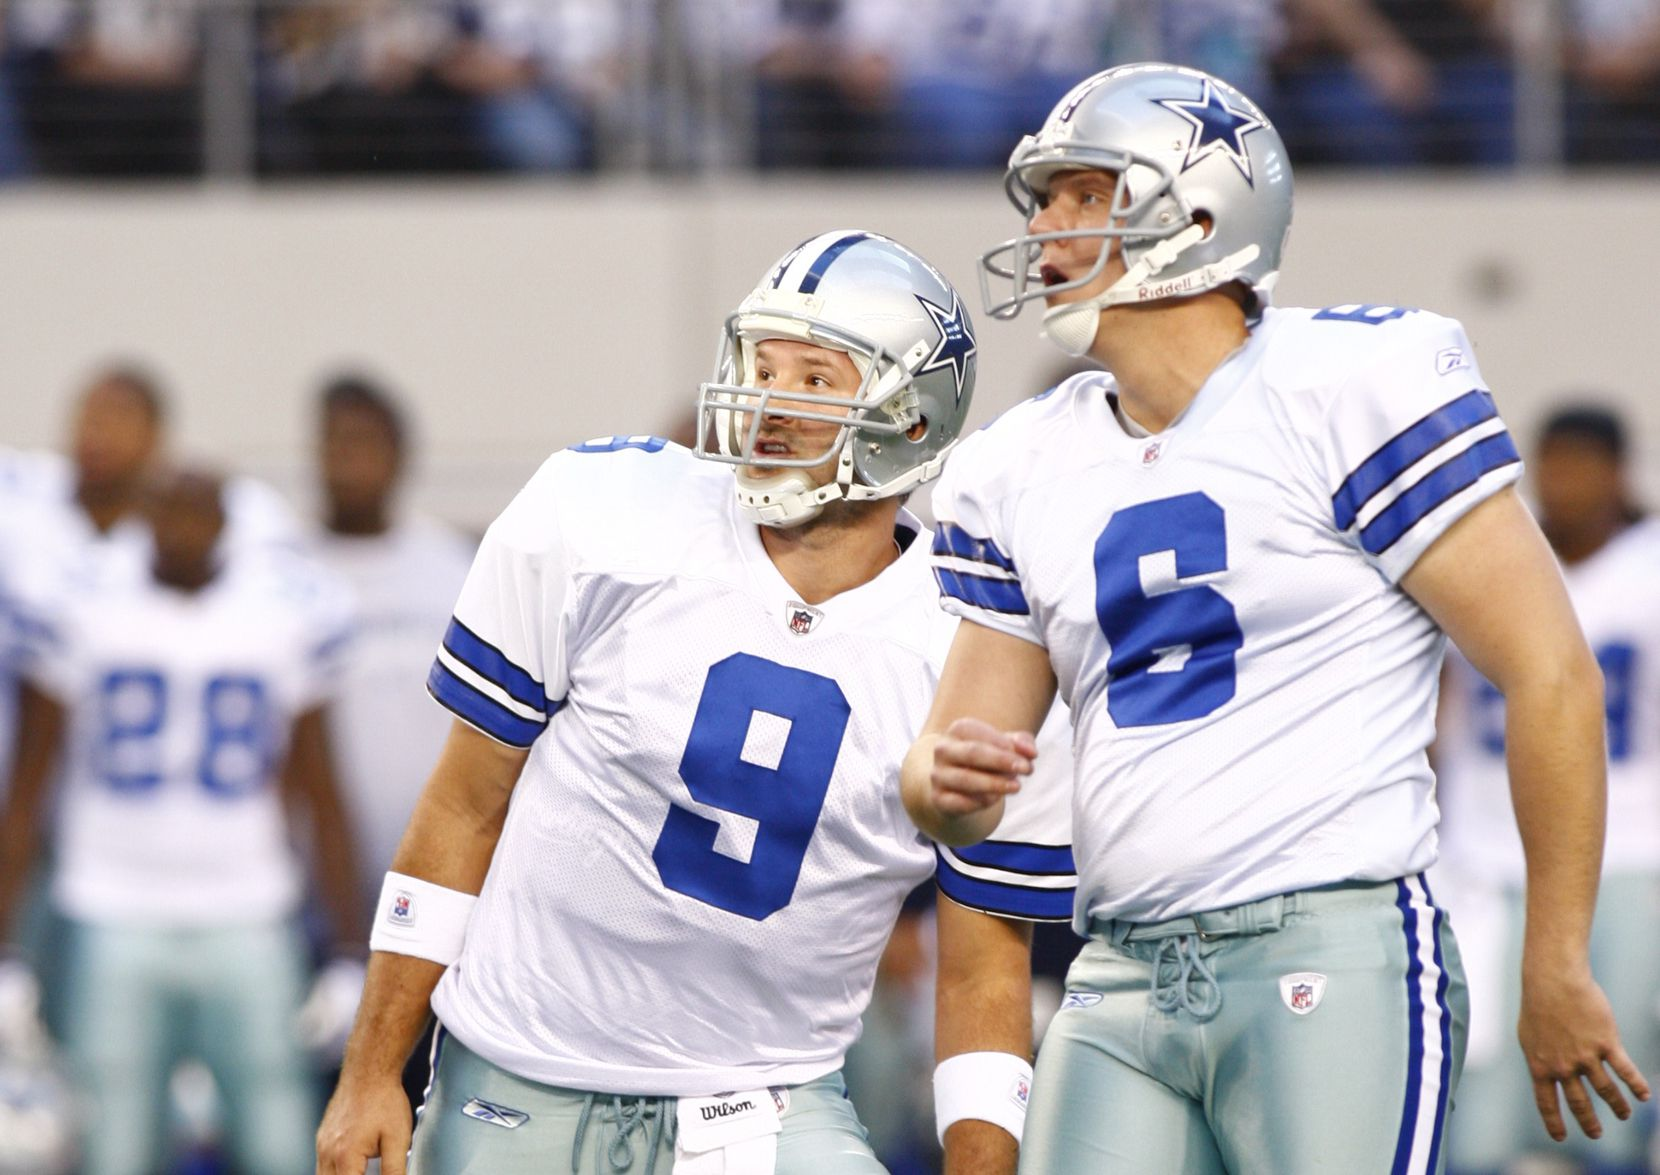 Nick Folk (6) and Dallas Cowboys quarterback Tony Romo (9) watch Folk's first quarter kick for a field goal sail towards the goalposts during first half NFL football action between the Dallas Cowboys and the San Diego Chargers at Dallas Cowboys Stadium in Arlington on Sunday, December 13, 2009. (John F. Rhodes / The Dallas Morning News)